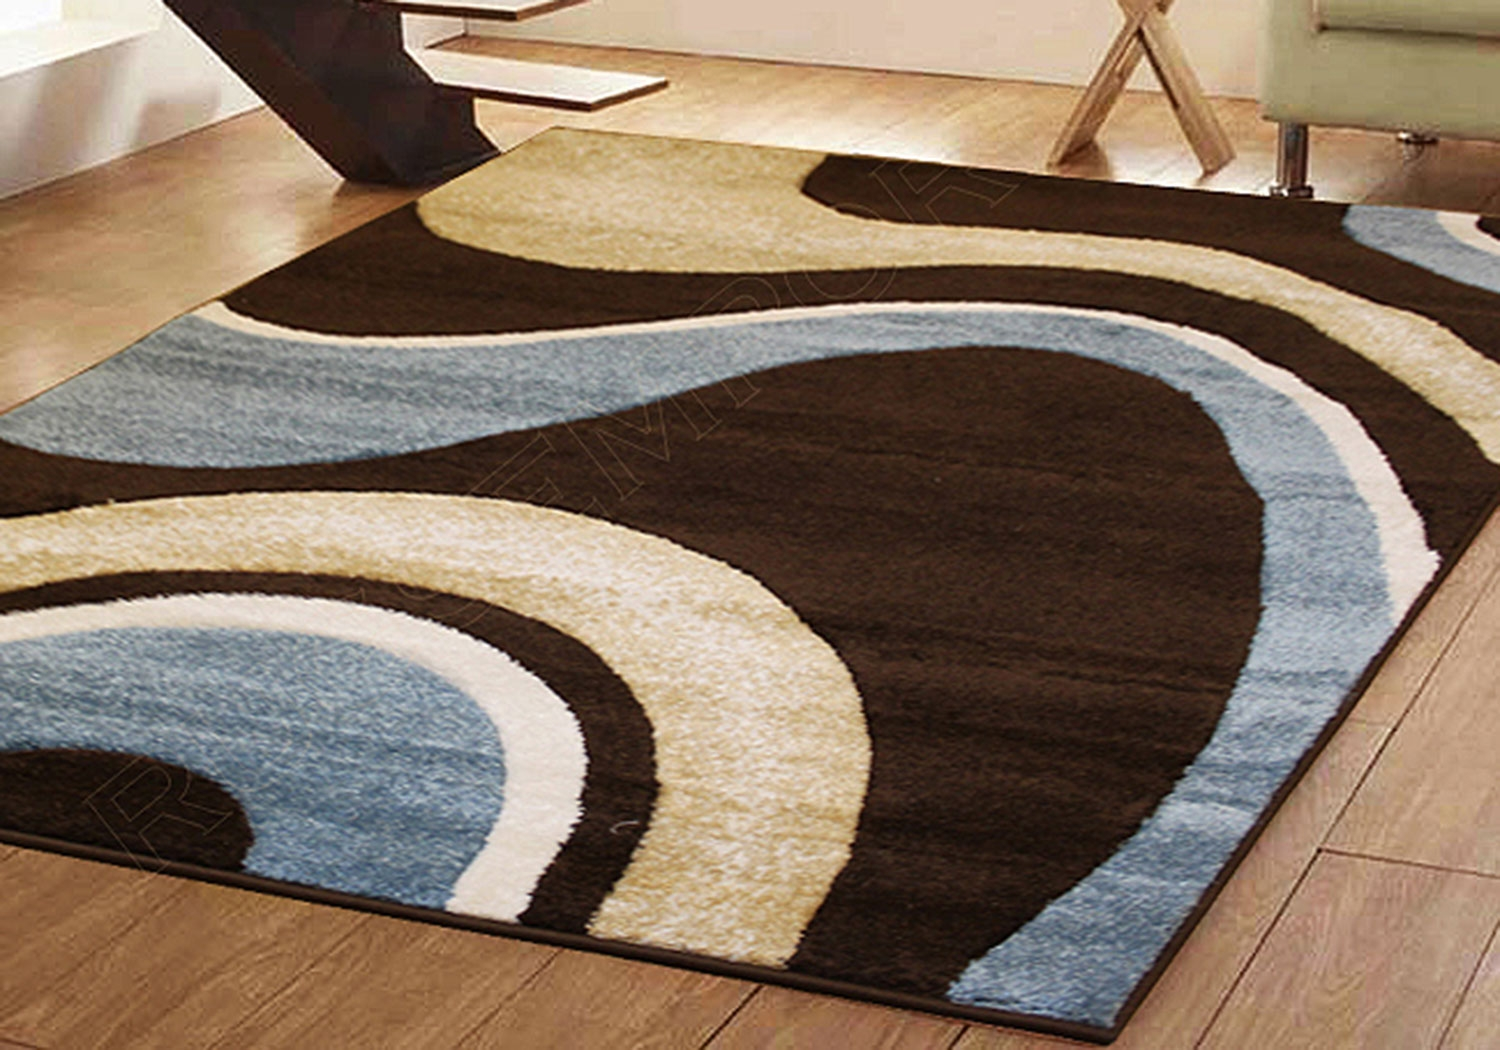 on sizes room area your wonderful modern floor red lovely runner rug round the as cheap teal extra blue for fireplace traditional home rugs large living ideas outdoor